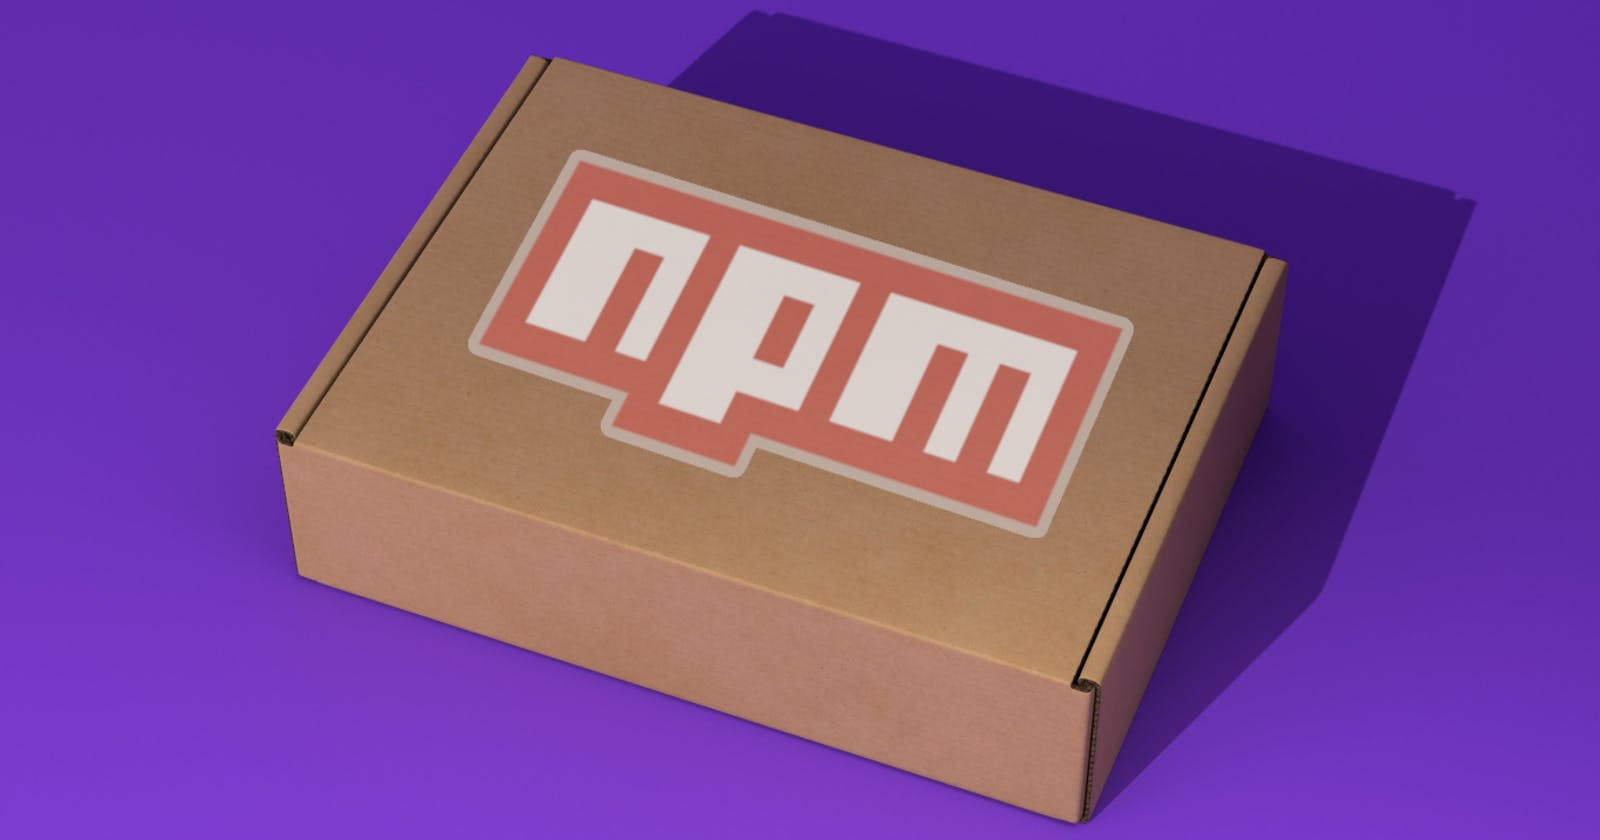 How to setup an NPM package